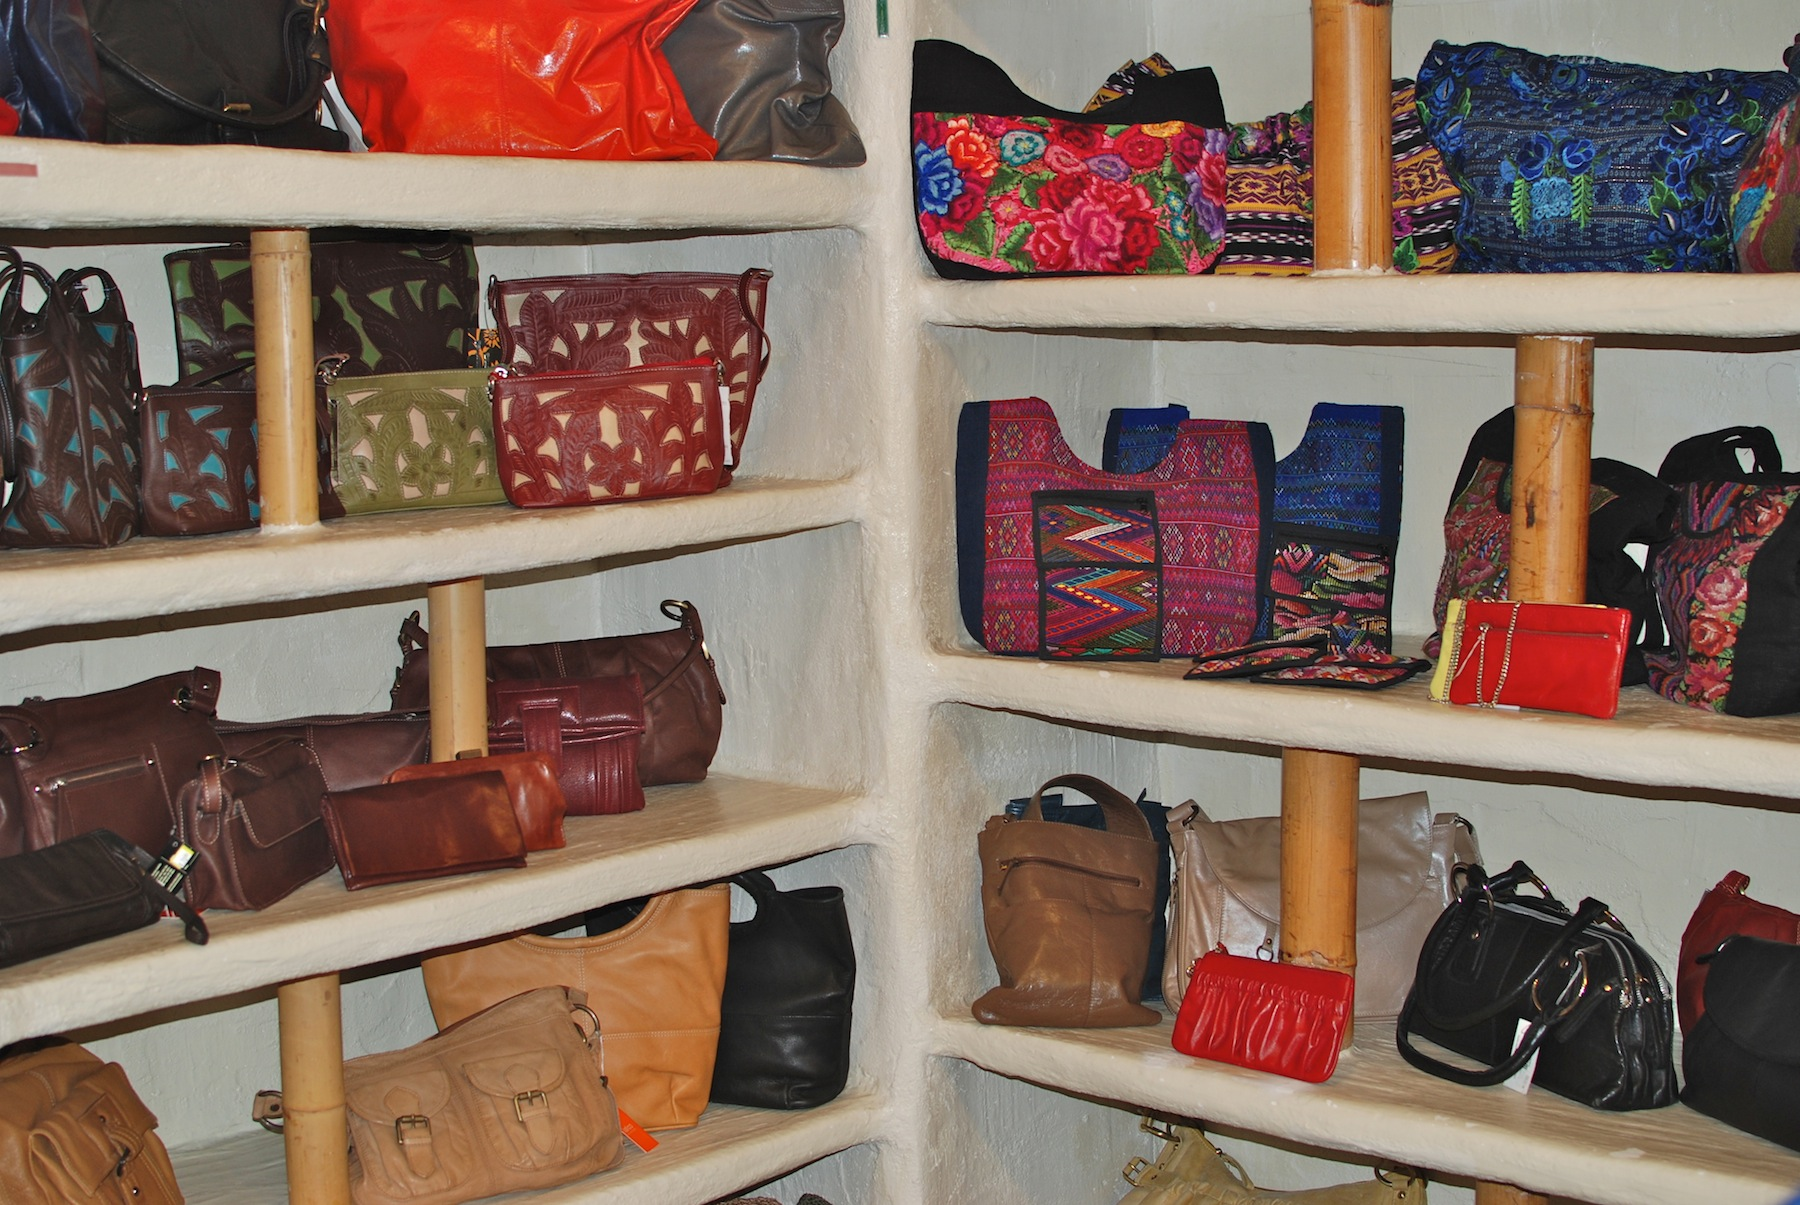 Handbags and purses in all shapes and sizes.